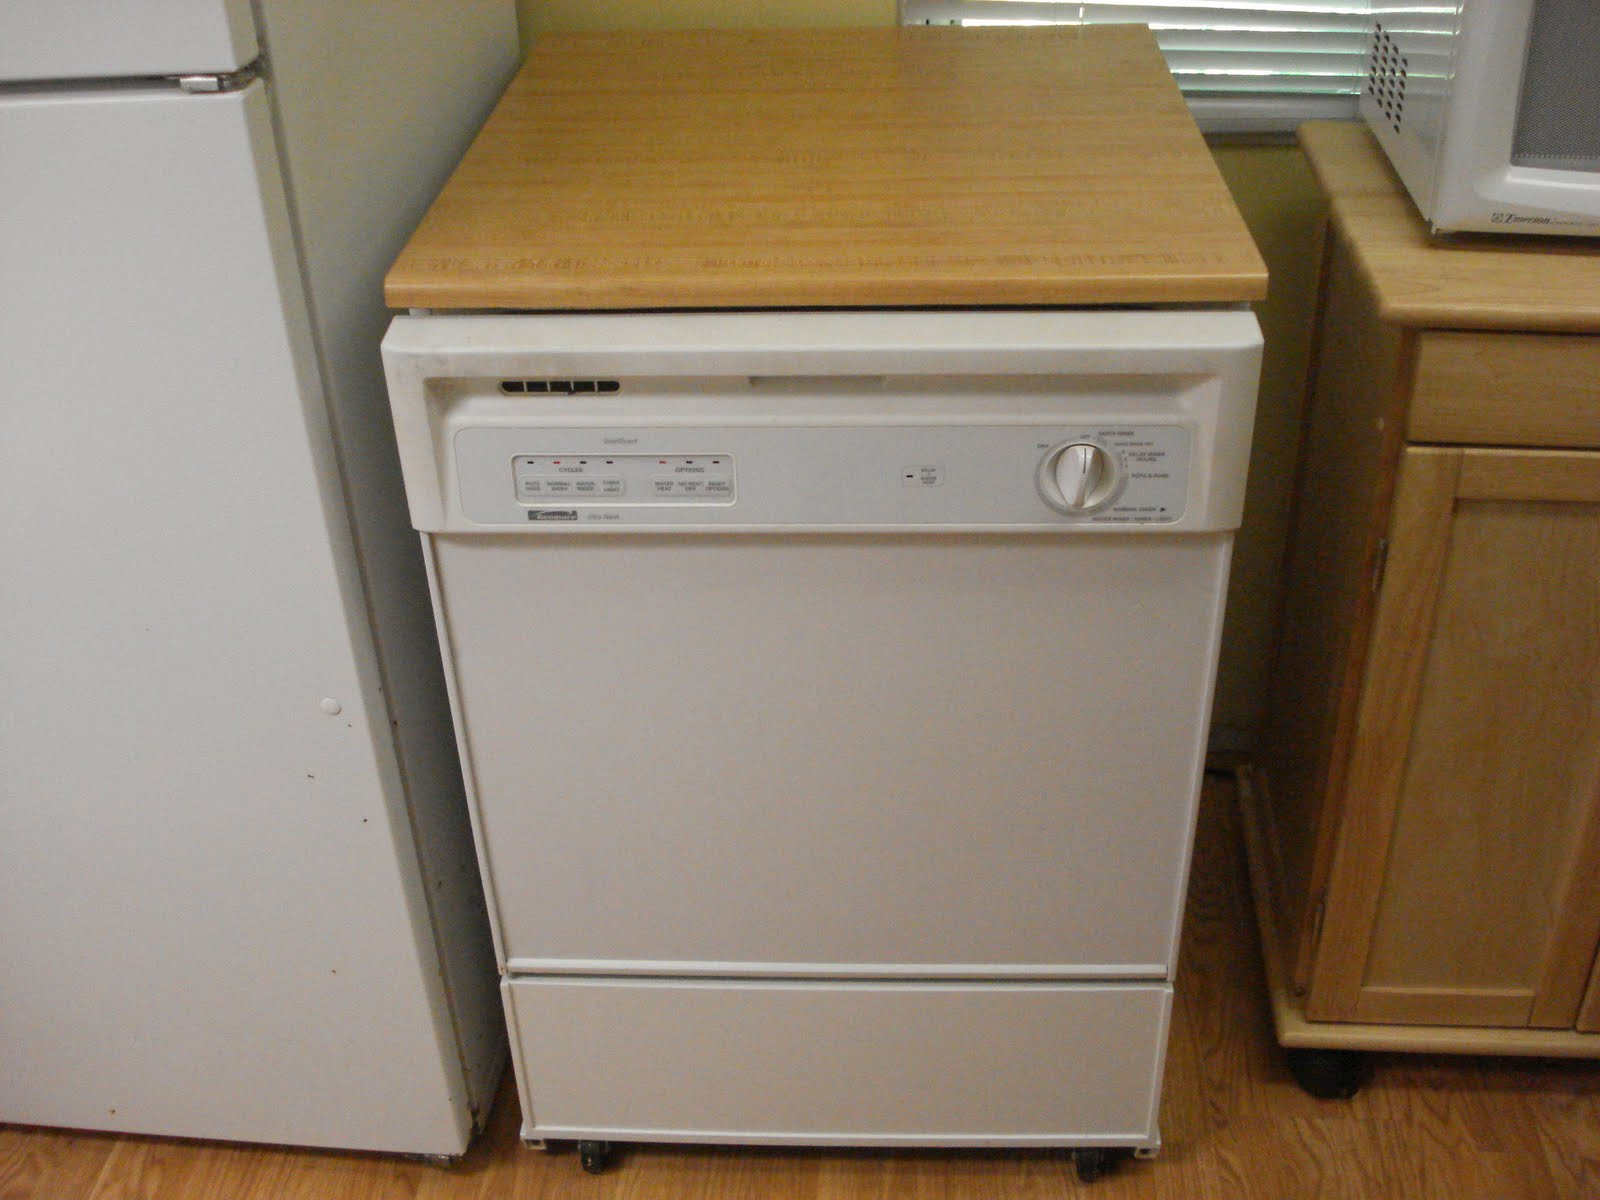 portable dishwasher: Different types of dishwashers